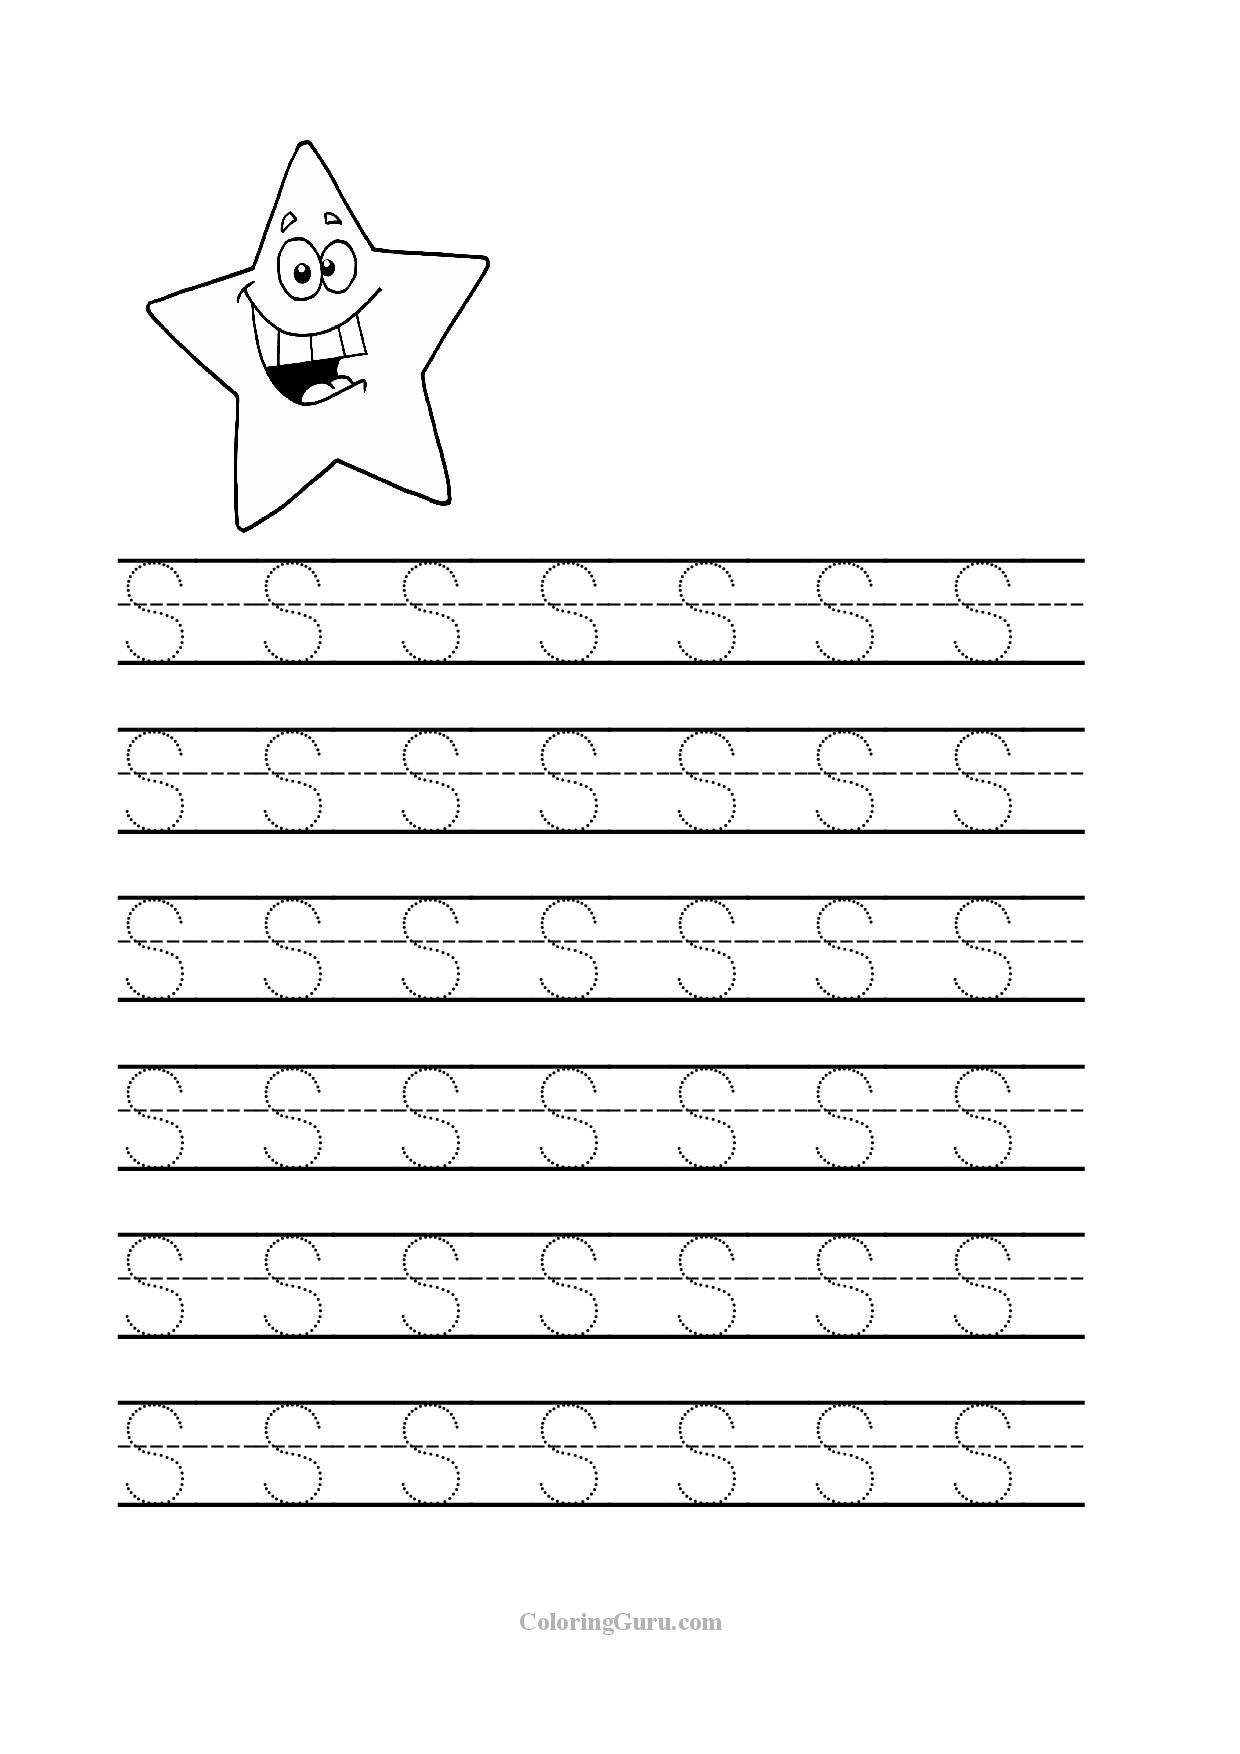 Free Printable Tracing Letter S Worksheets For Preschool with How To Use Tracing Paper For Letters